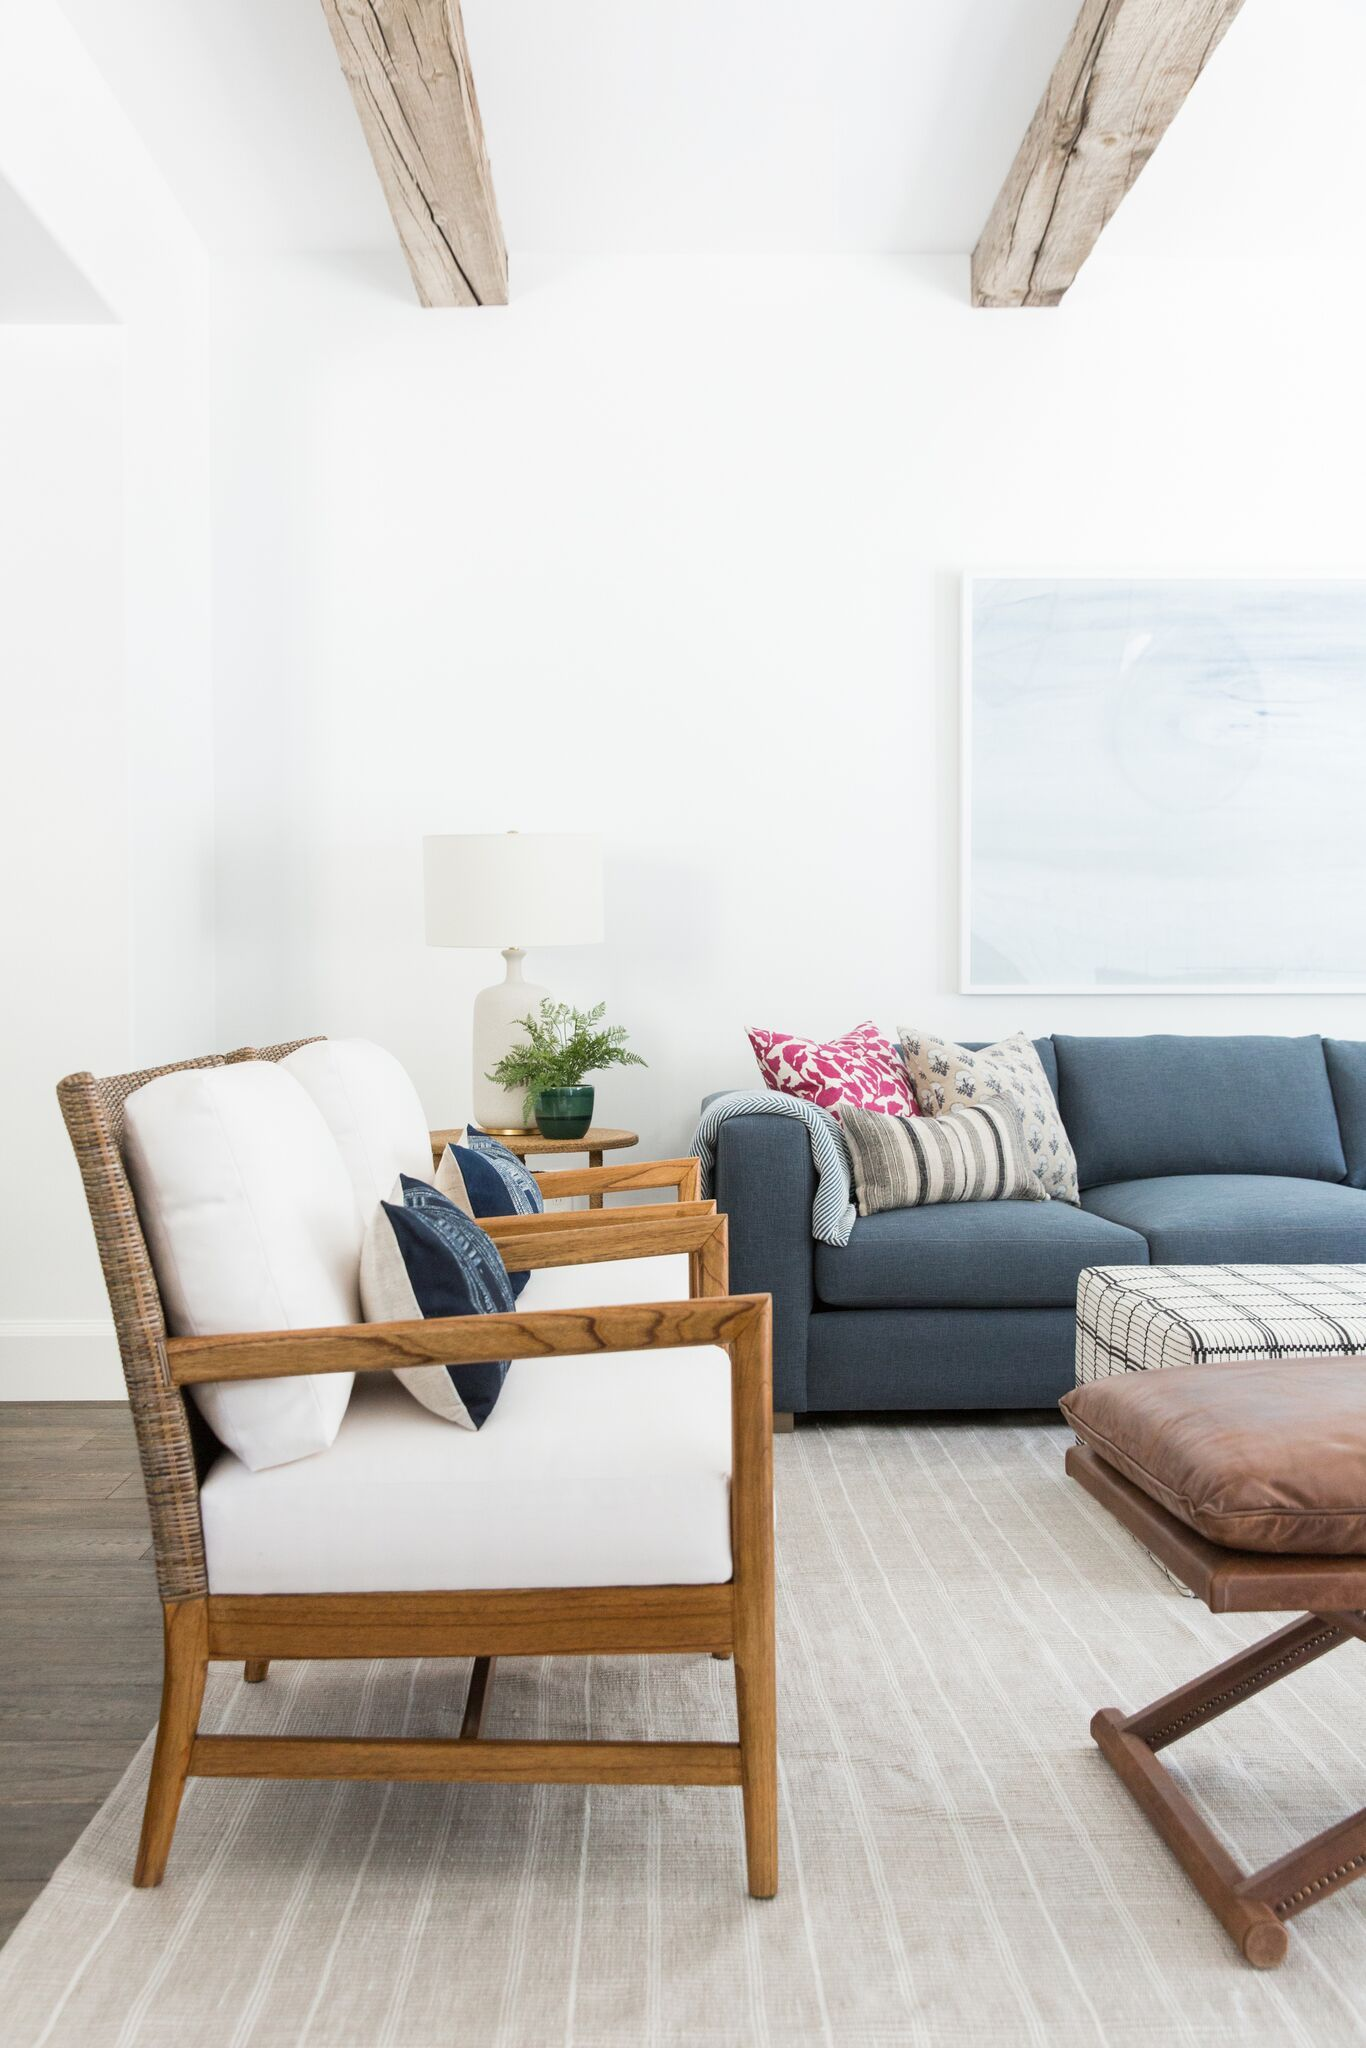 The sofa could even be a chambray blue or denimish sort of color if the other seating options are a little lighter